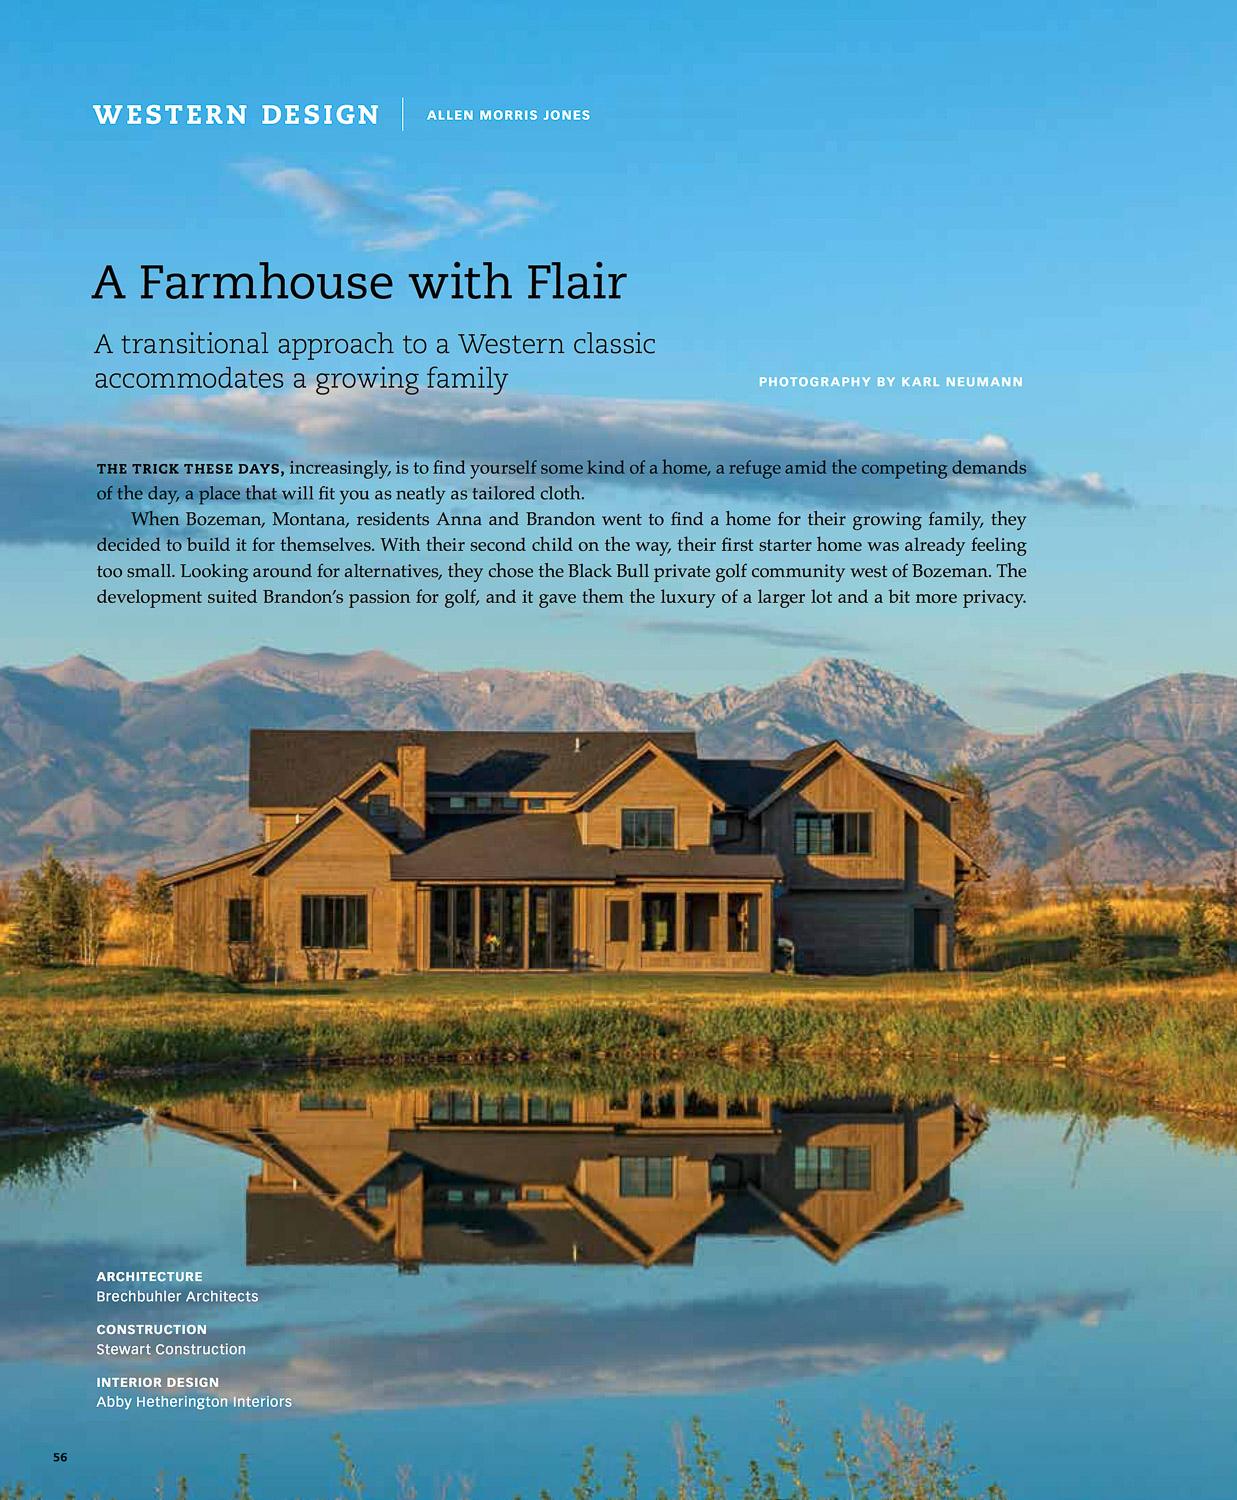 Big Sky Journal Summer 2016 Write-up on Brechbuhler Architects' Farmhouse Modern